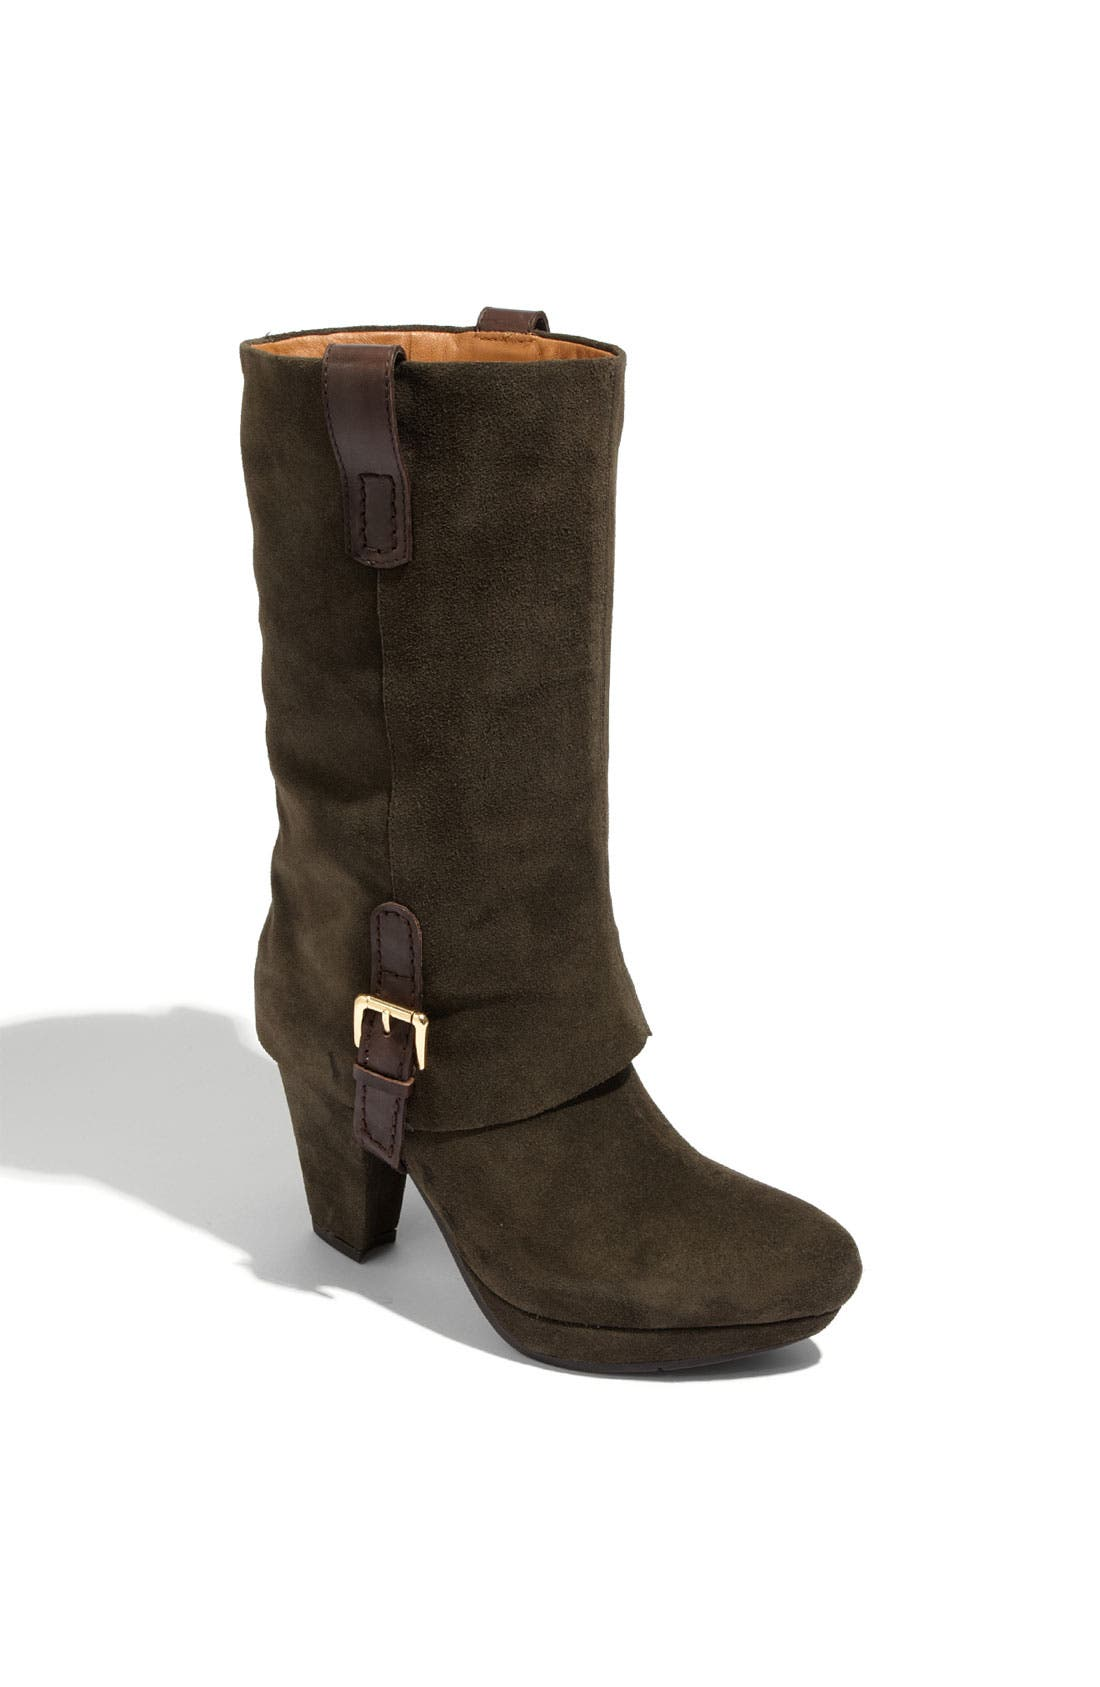 Alternate Image 1 Selected - Earthies® 'Lintz' Suede Boot